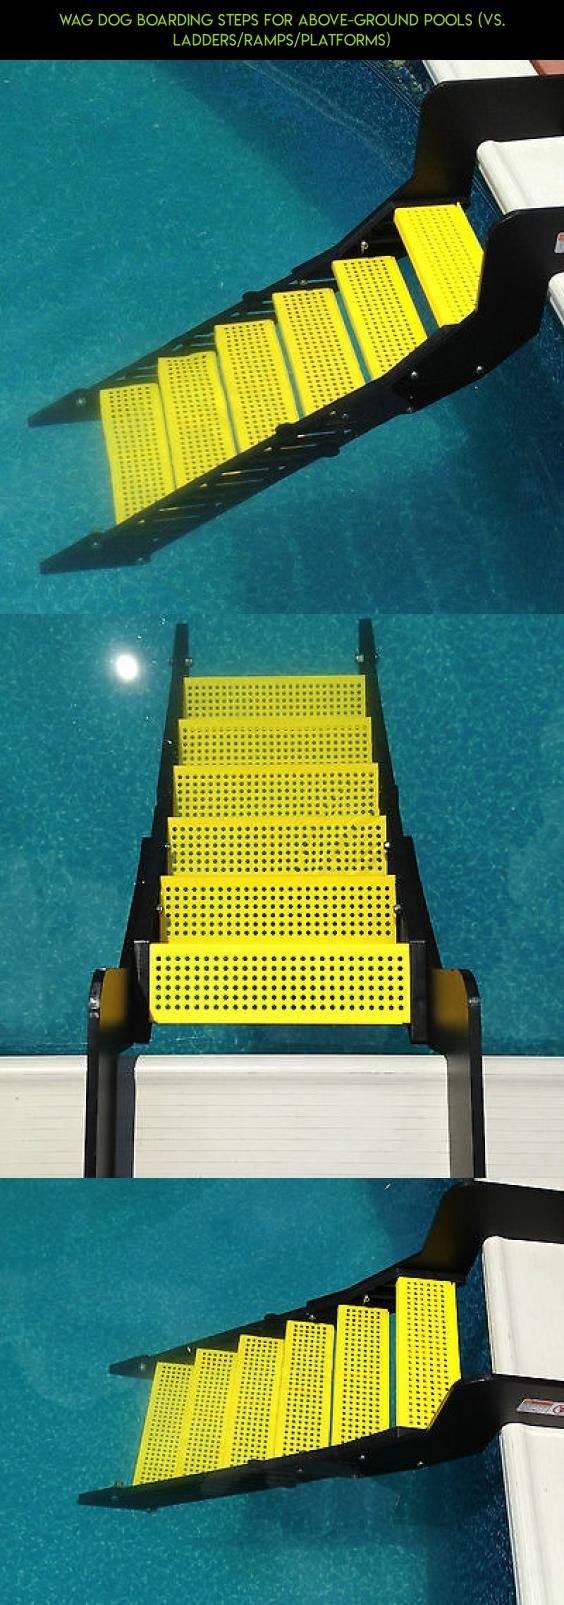 Above Ground Pool Ladders And Steps And Ramps